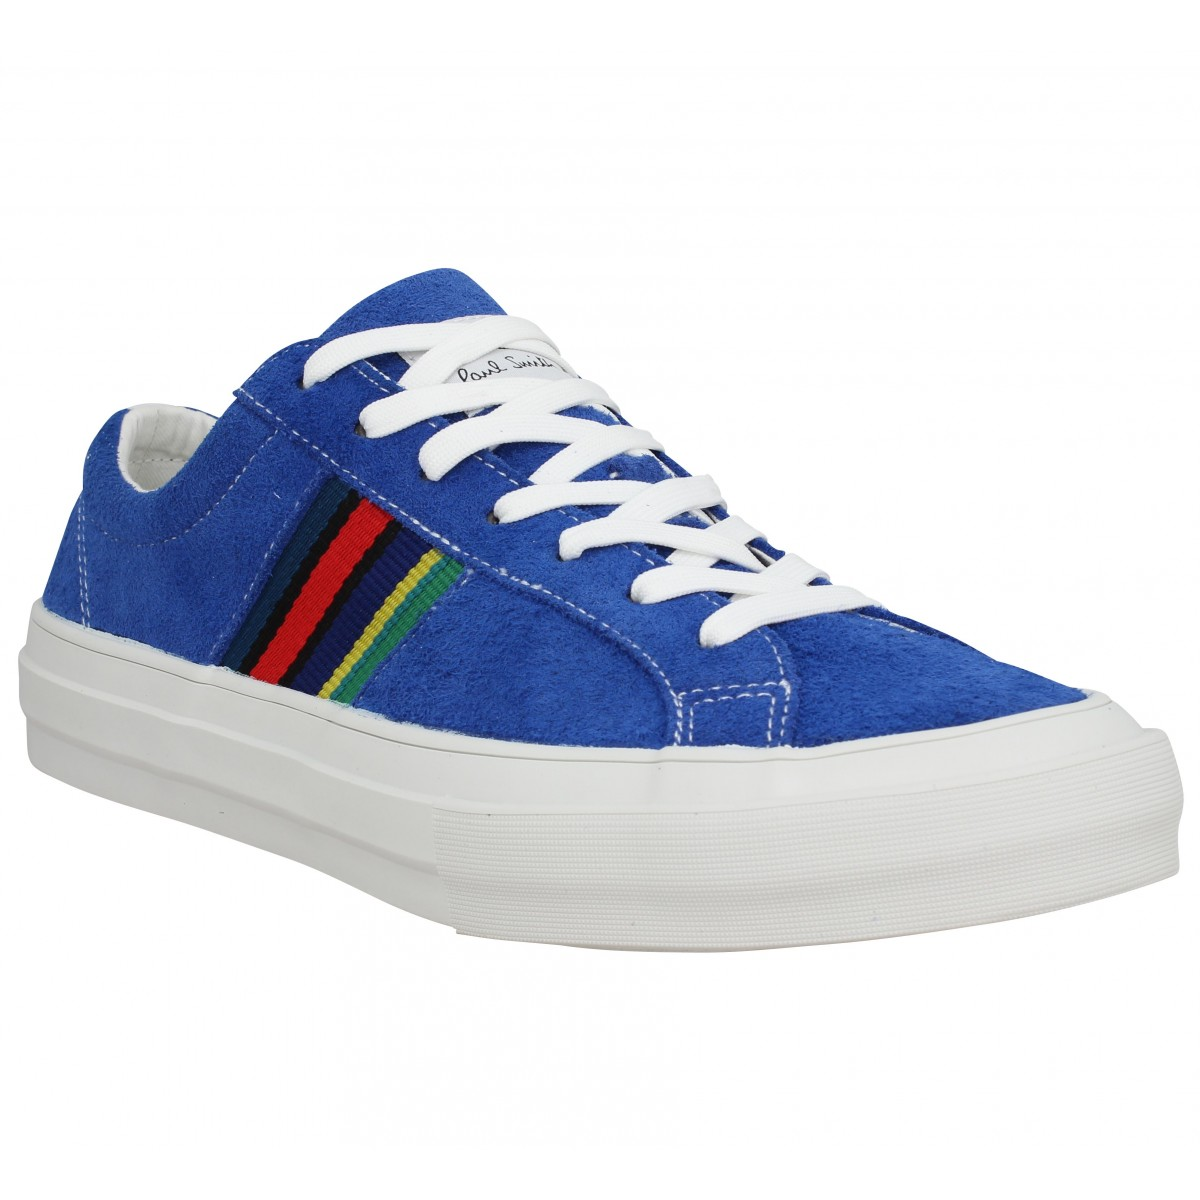 Baskets PAUL SMITH Antilla velours Homme Bleu